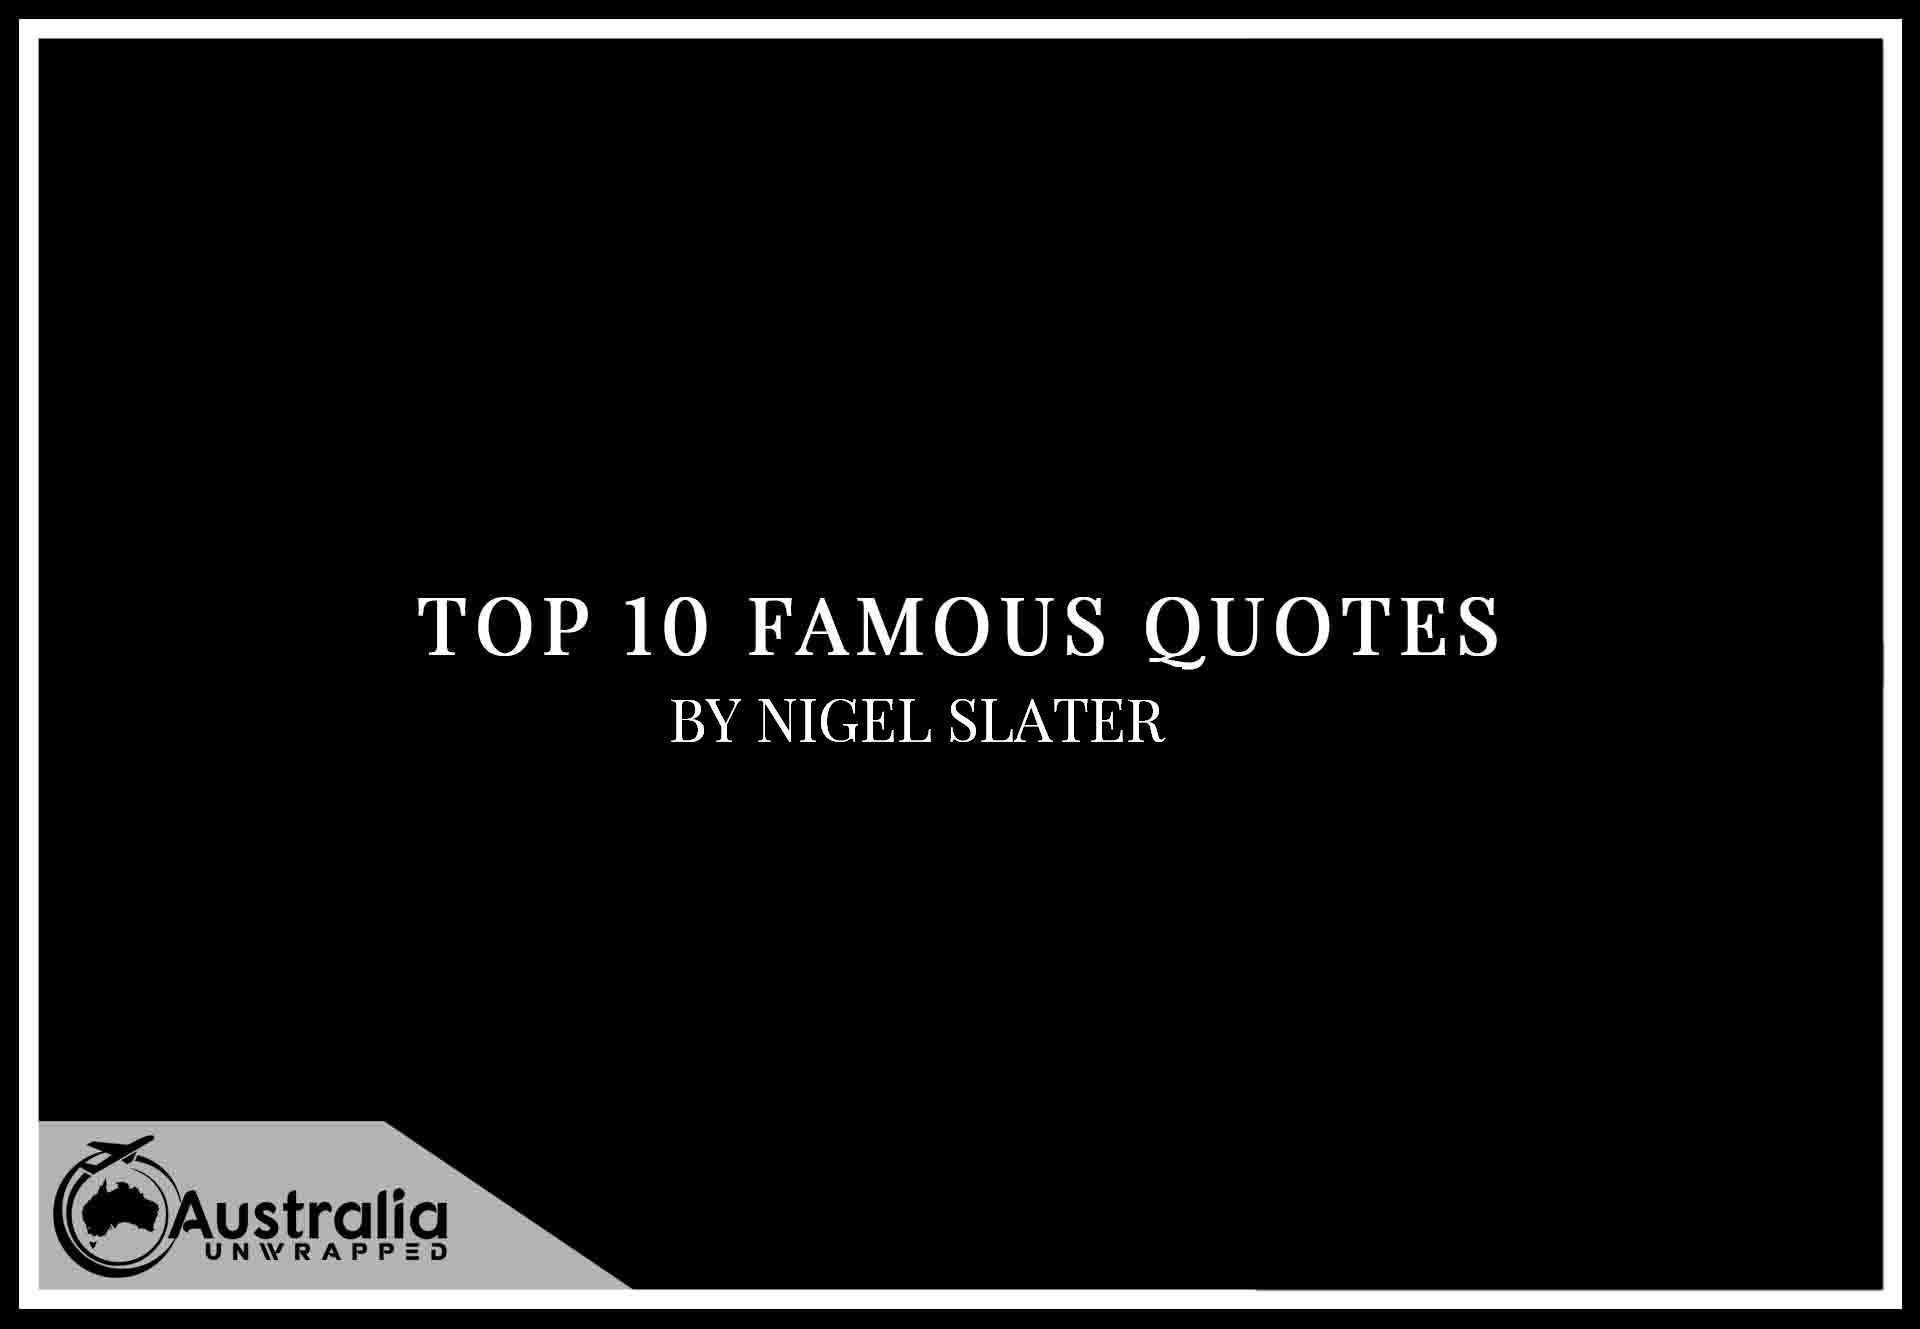 Top 10 Famous Quotes by Author Nigel Slater